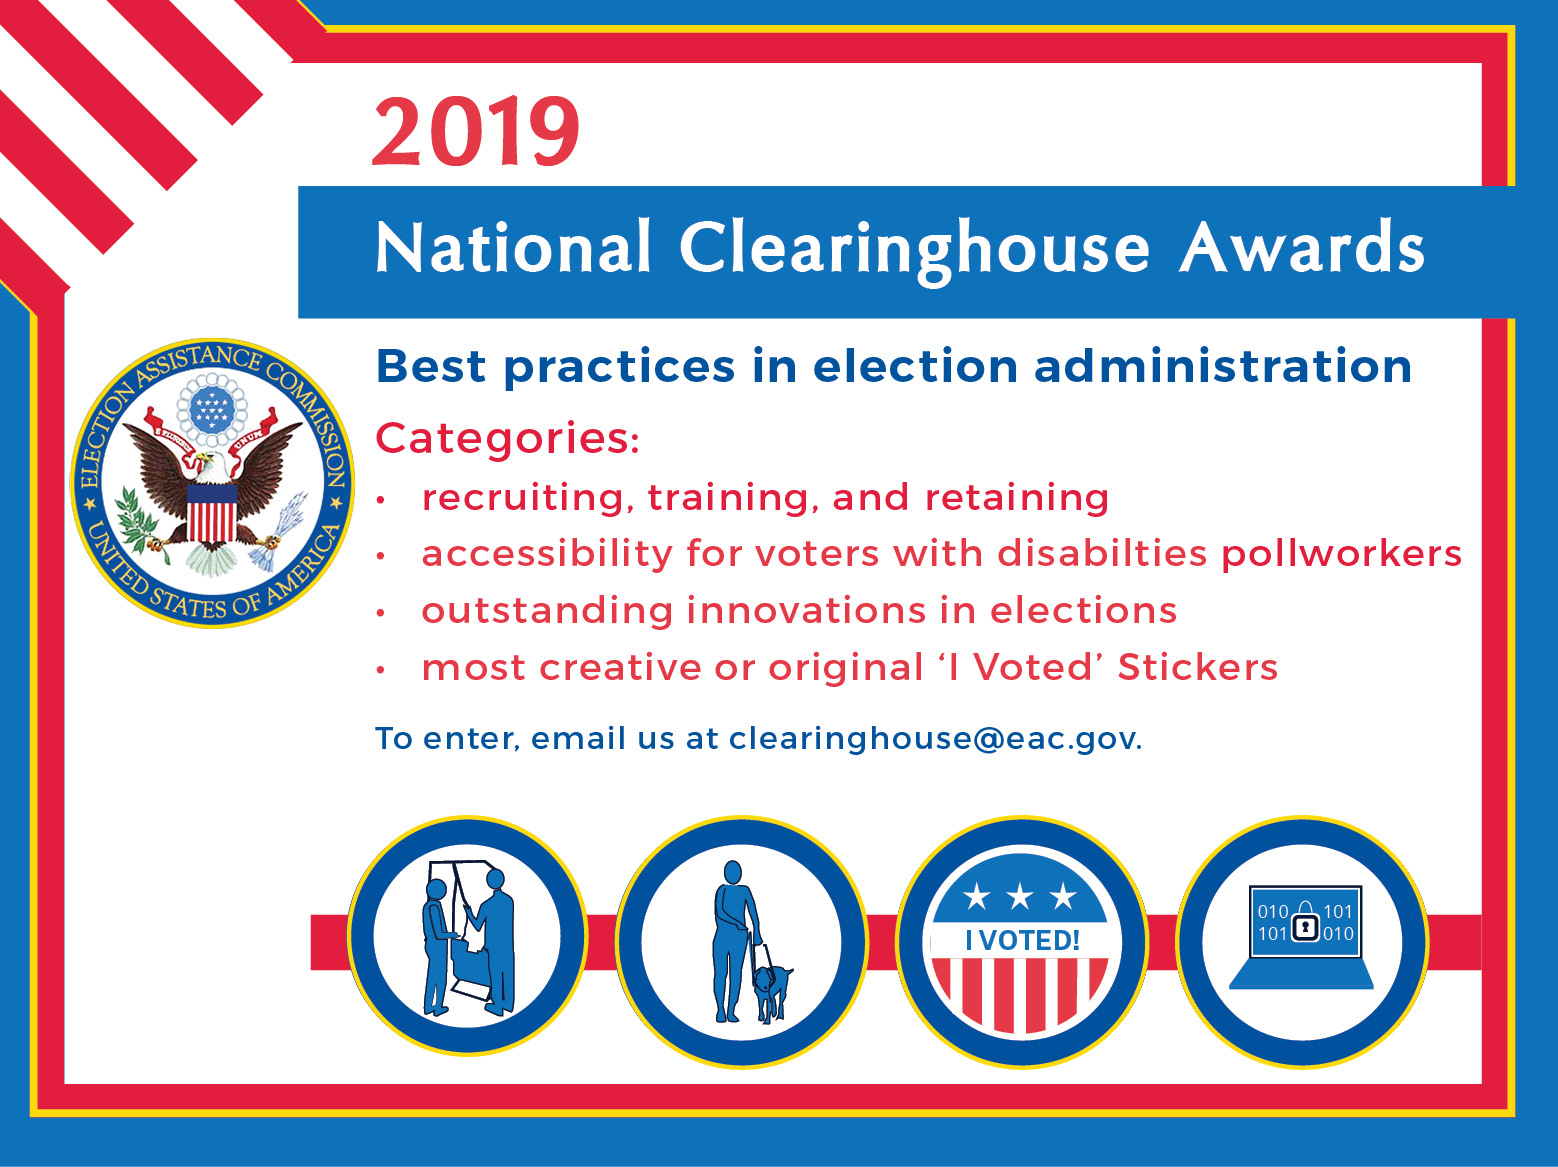 EAC Opens Submission Period in Fourth Annual Competition for Clearinghouse Awards: Celebrating Best Practices in Election Administration